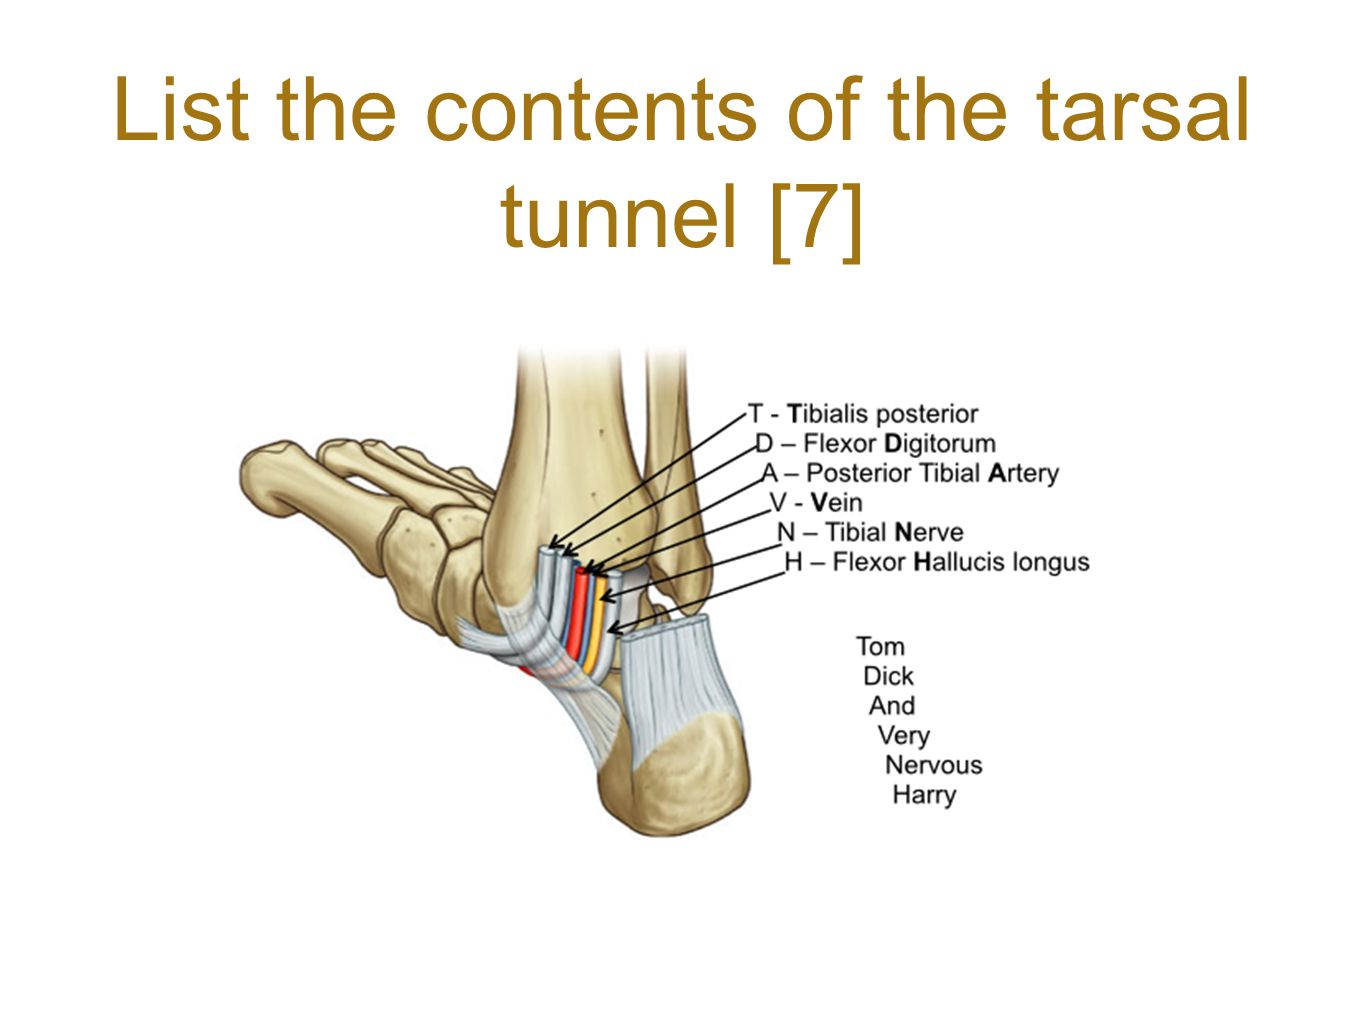 List the contents of the tarsal tunnel [7]